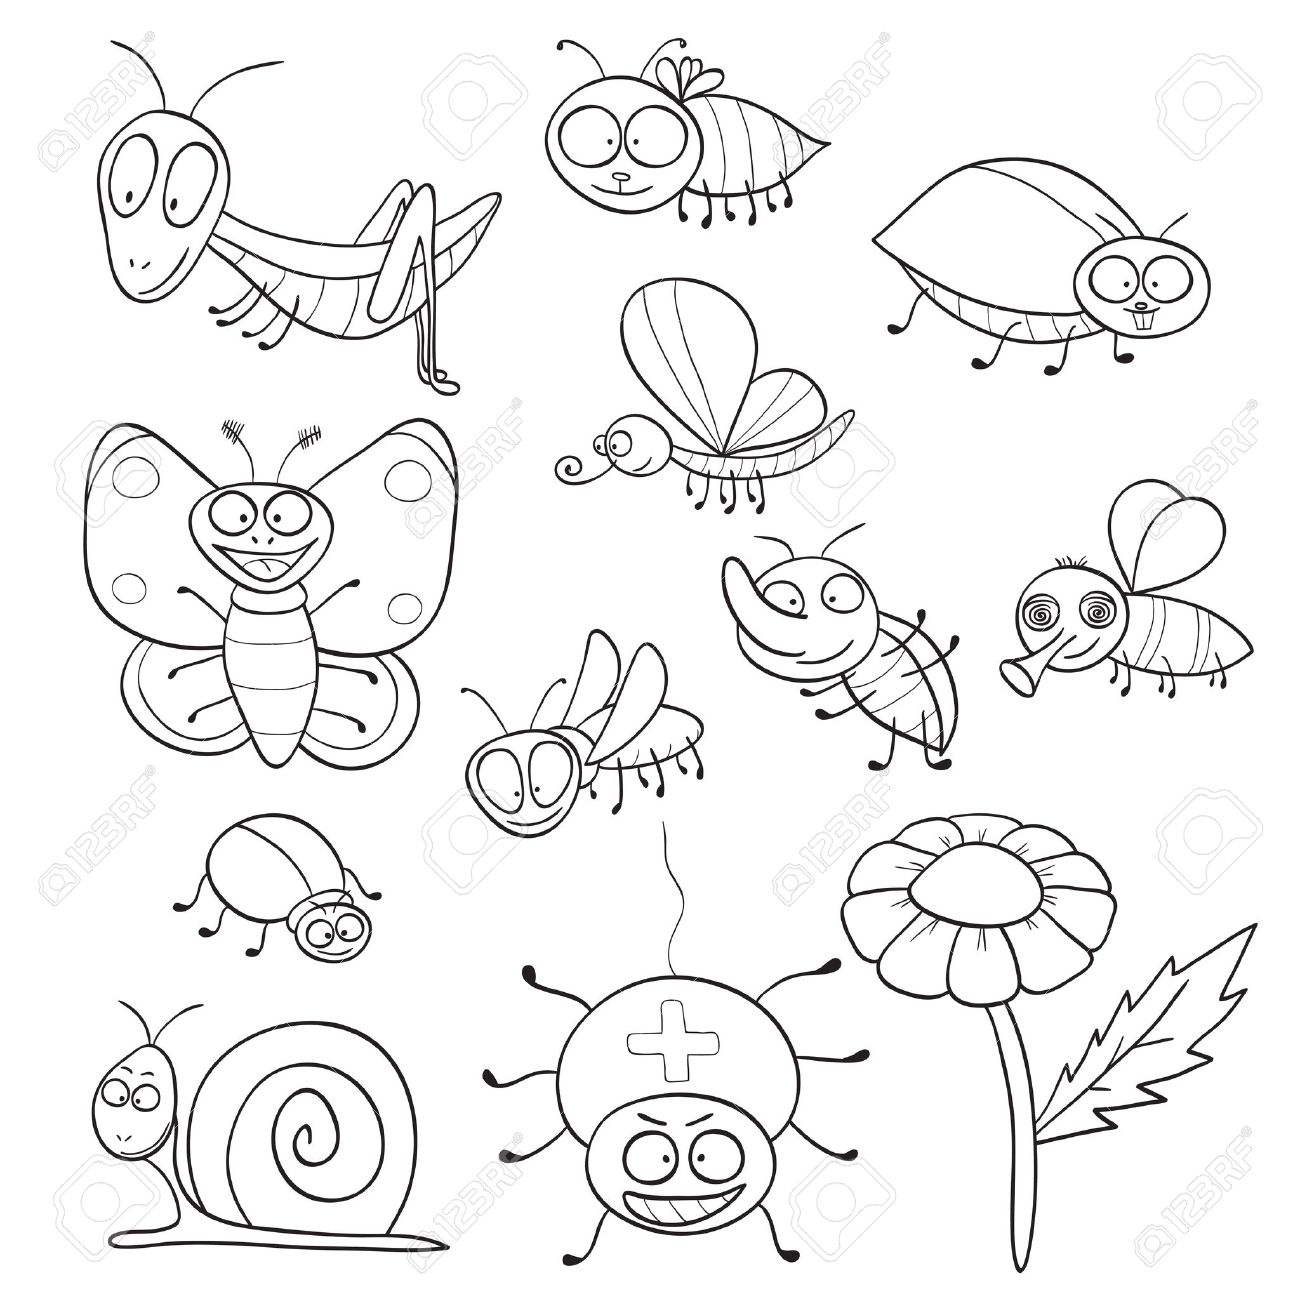 Outlined Cute Cartoon Insects For Coloring Book Vector Illustration Stock